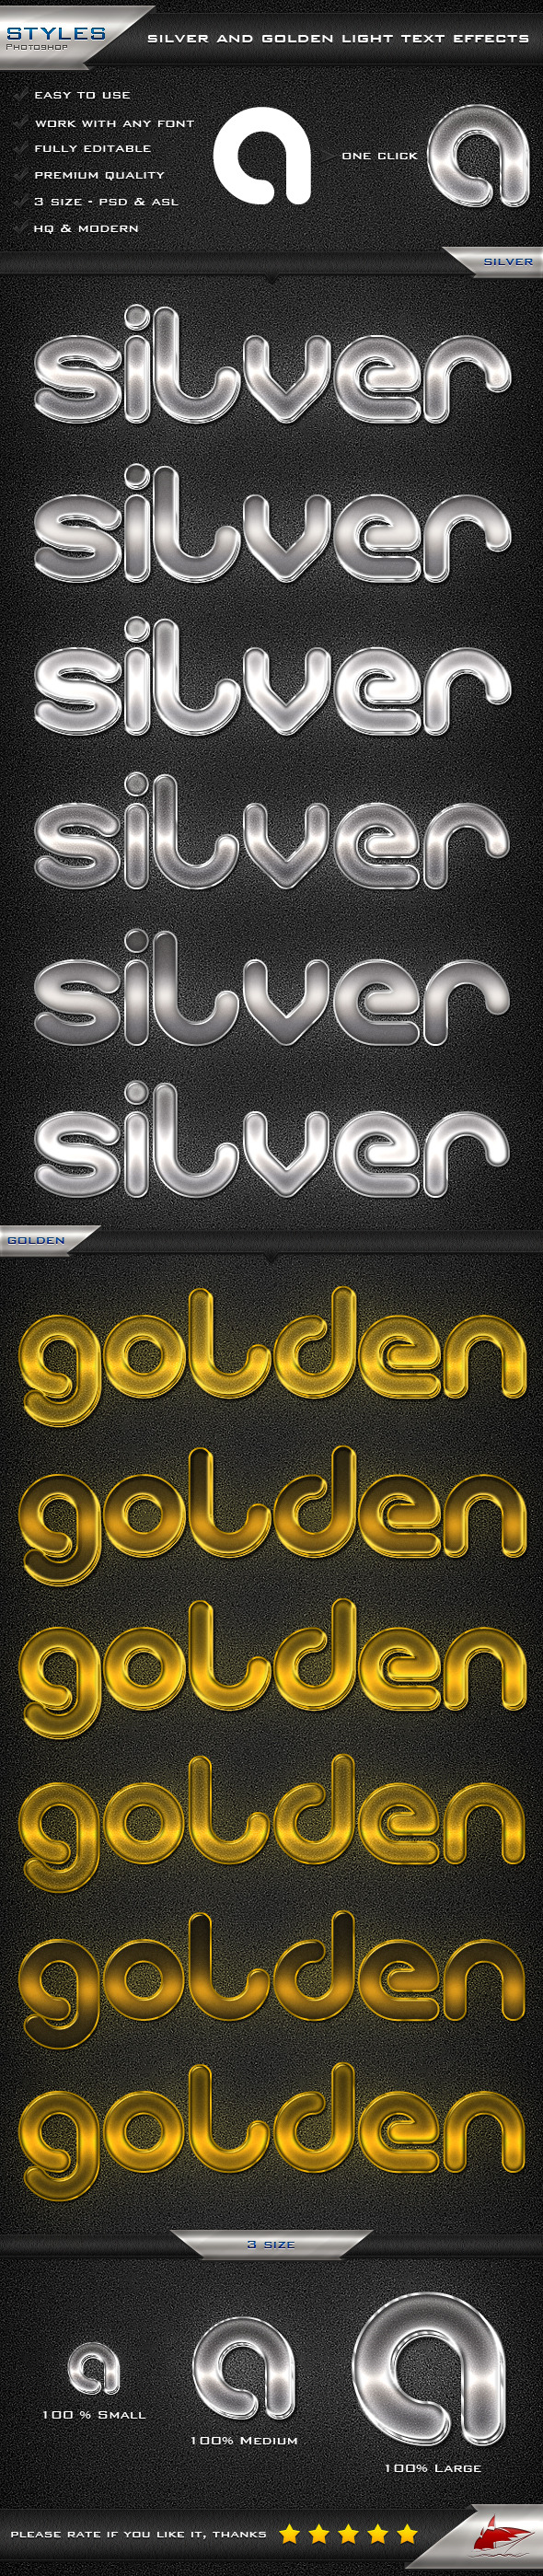 Silver and Golden Light Text Effects - Styles Photoshop